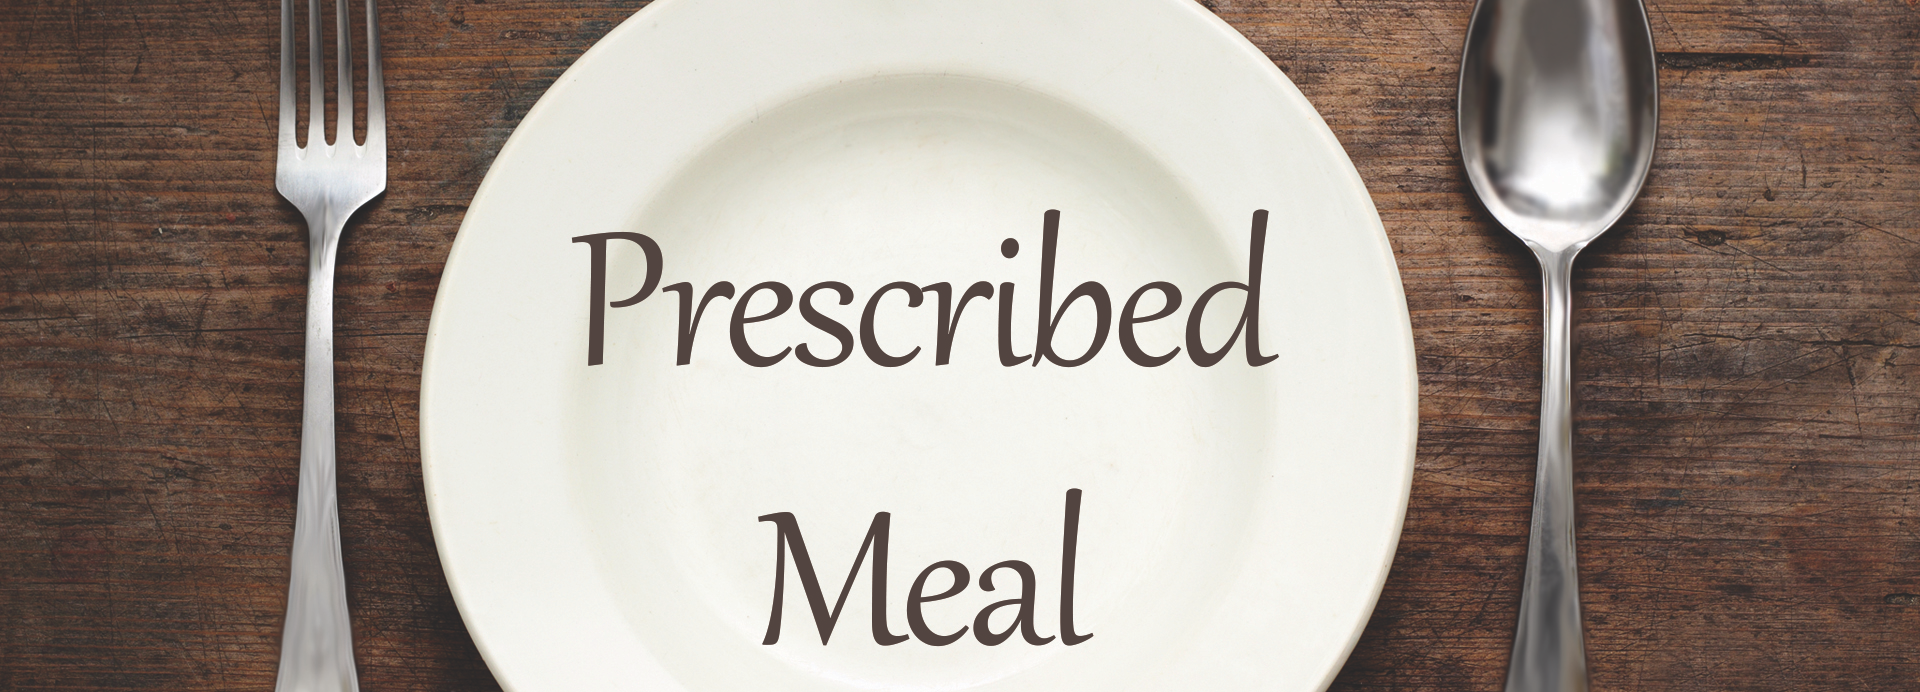 Prescribed meal